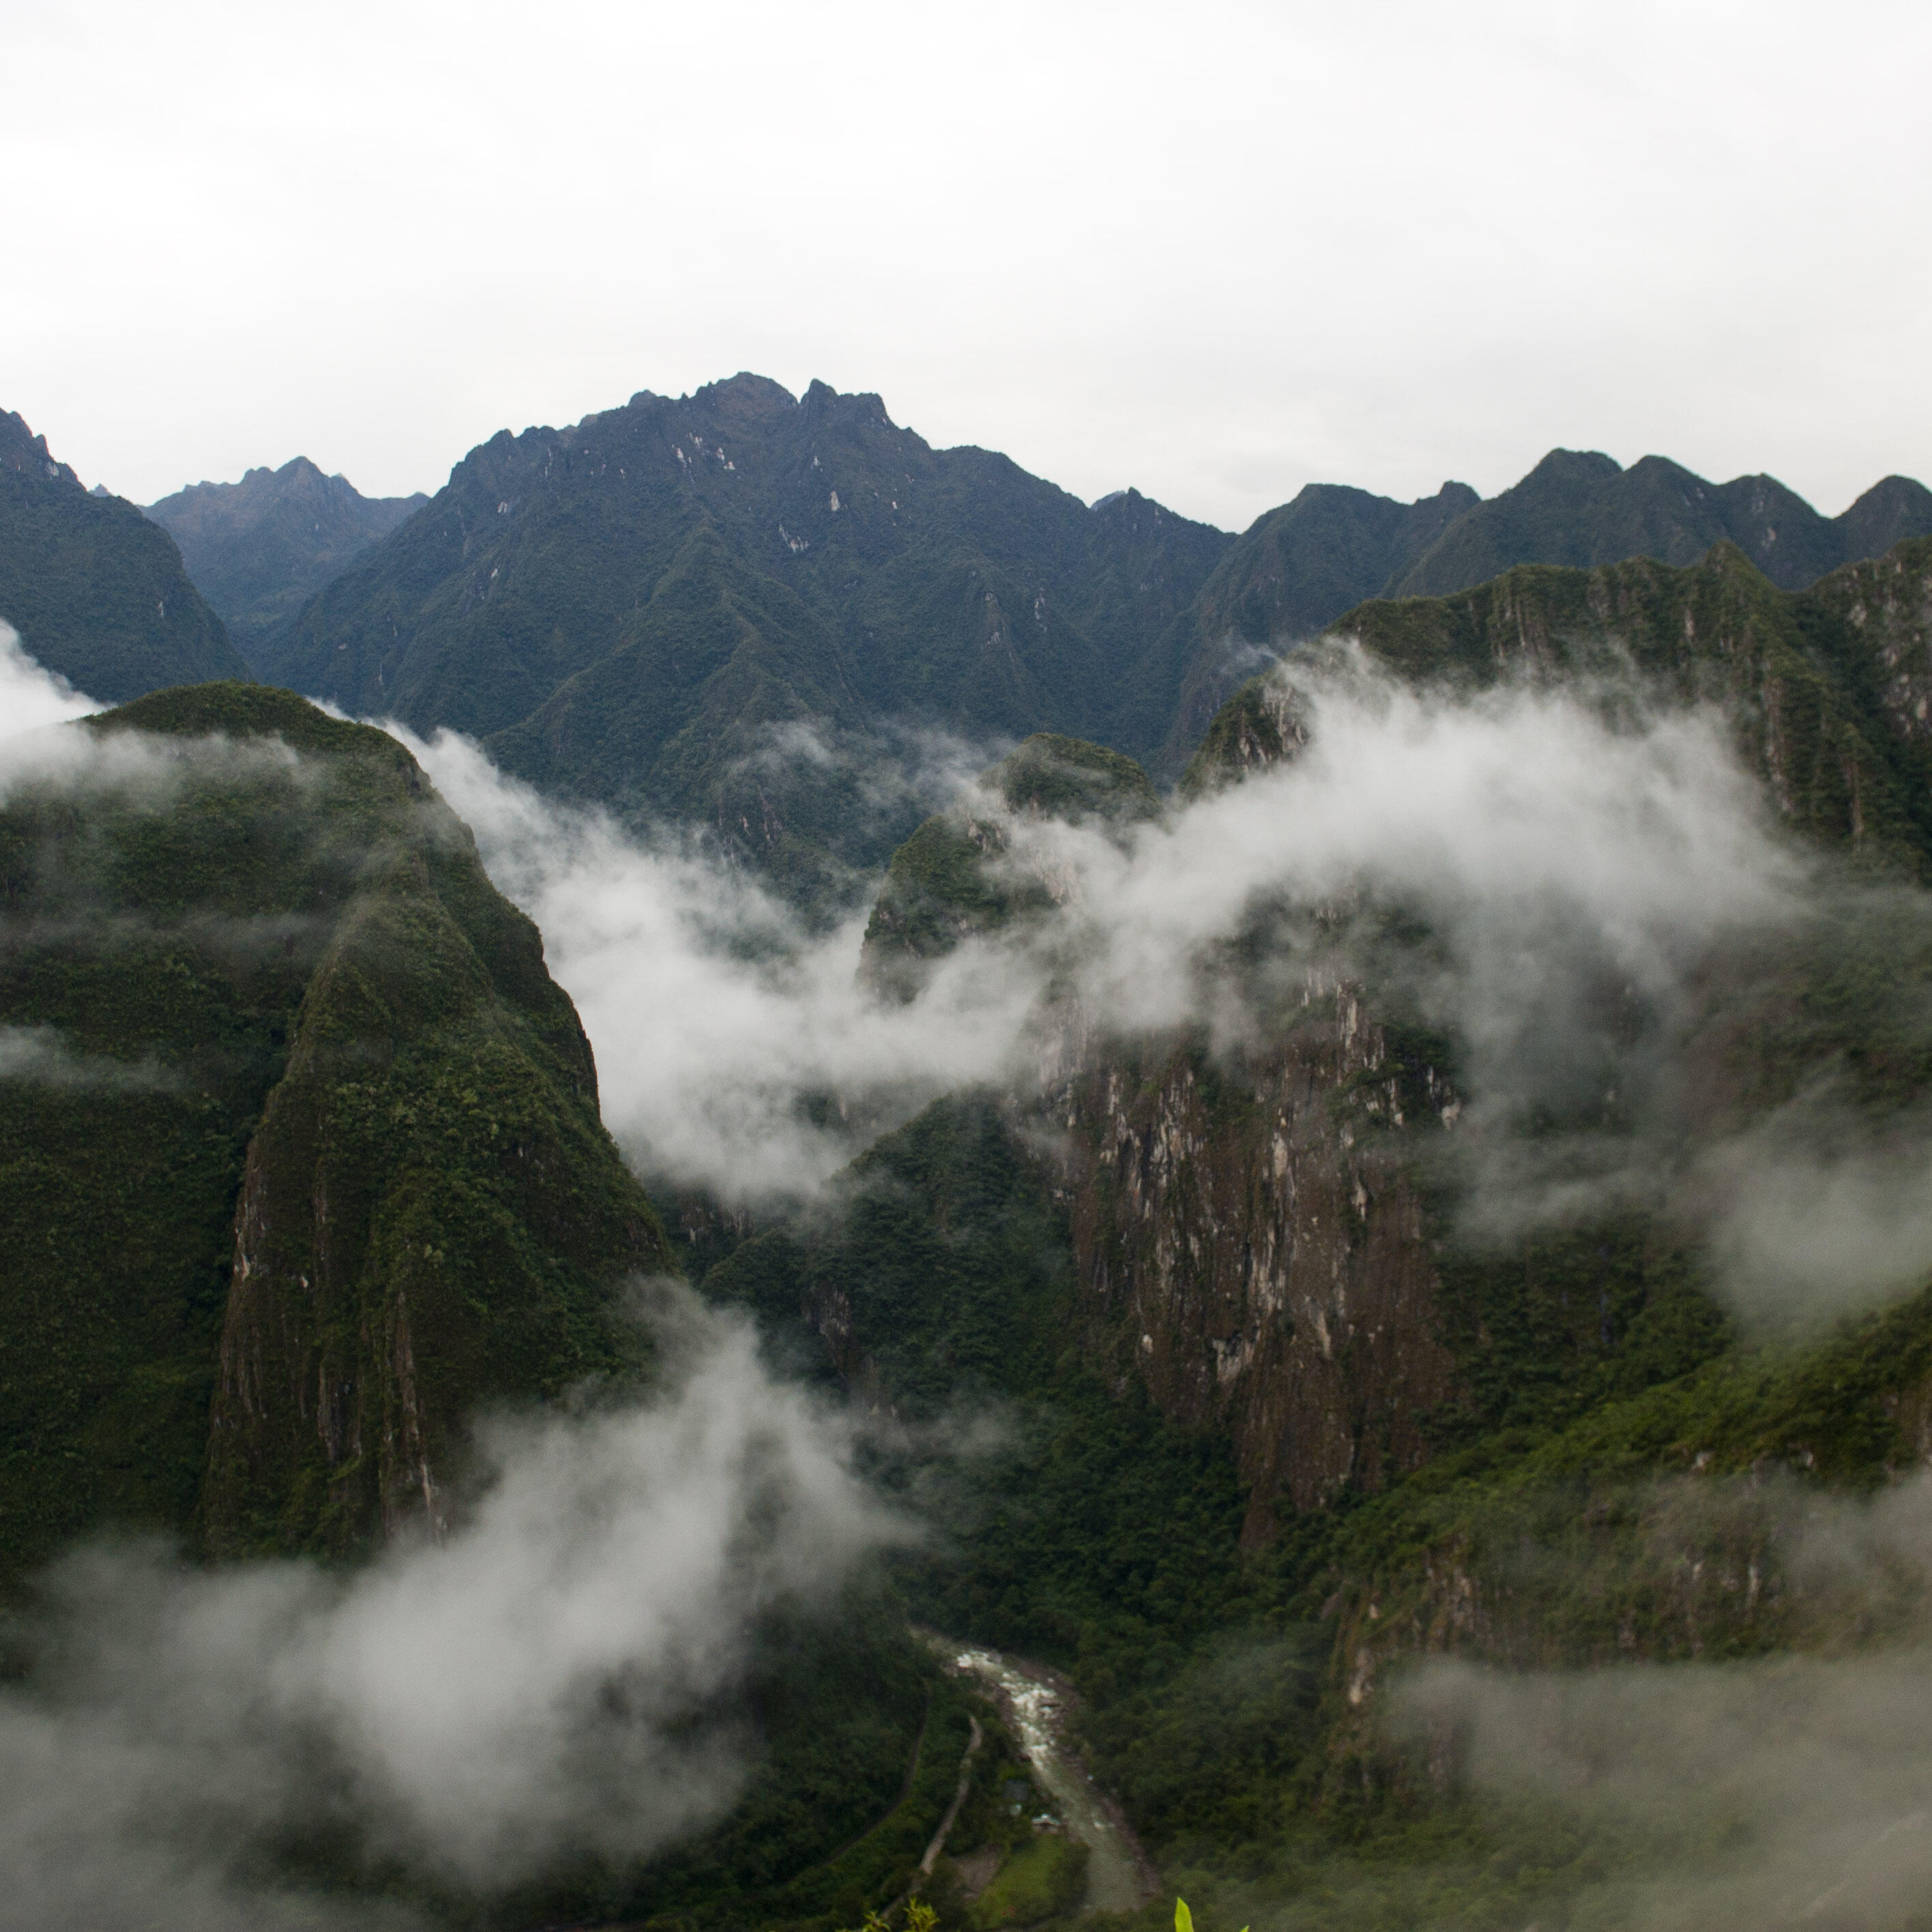 Dramatic scenes like this one are common on all the hikes to Macchu Pichu.